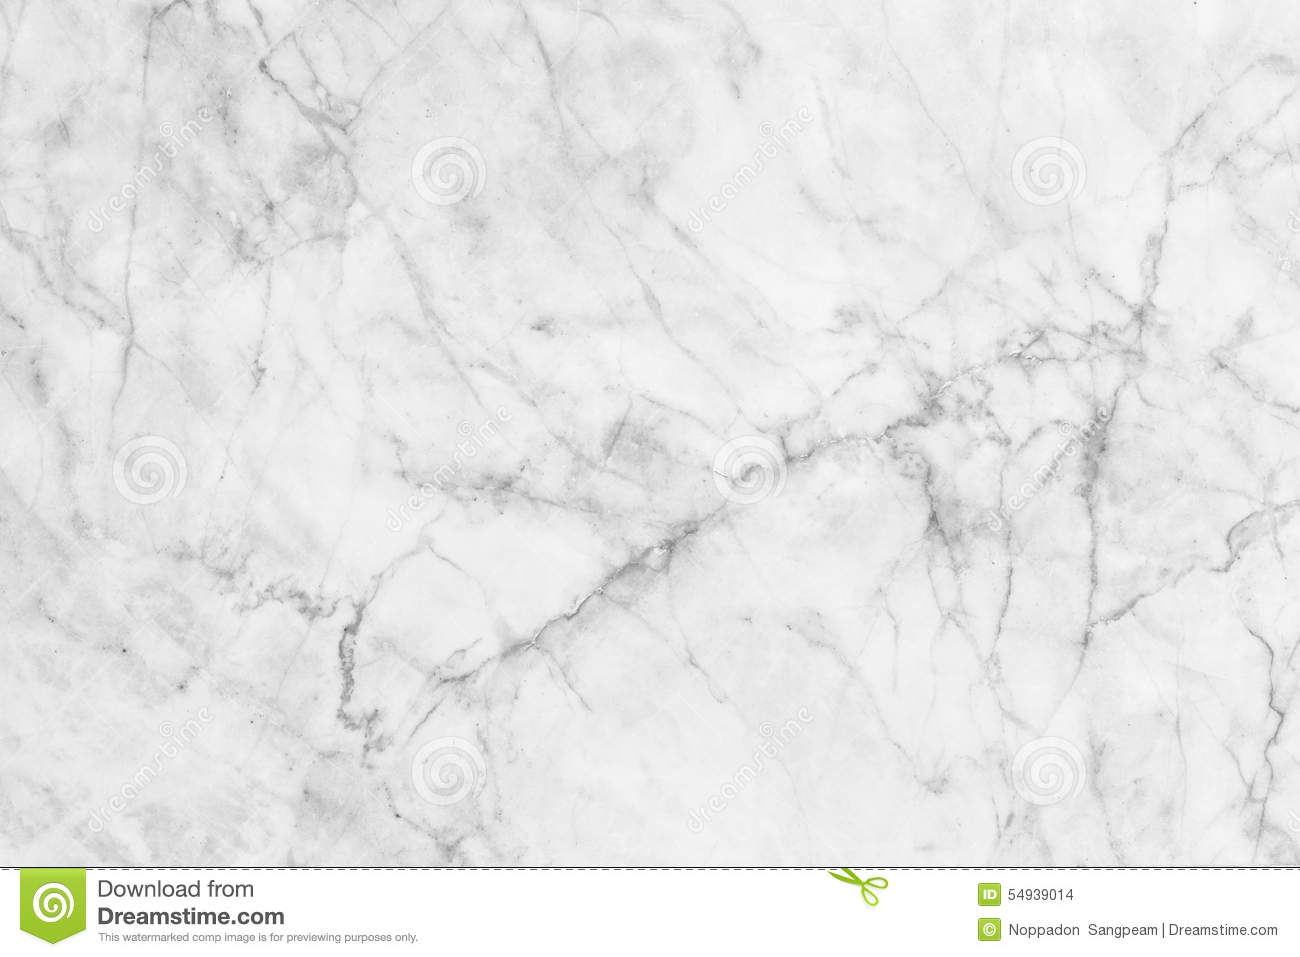 White Marble Patterned Texture Background Marbles Of Thailand Abstract Natural Marble Black